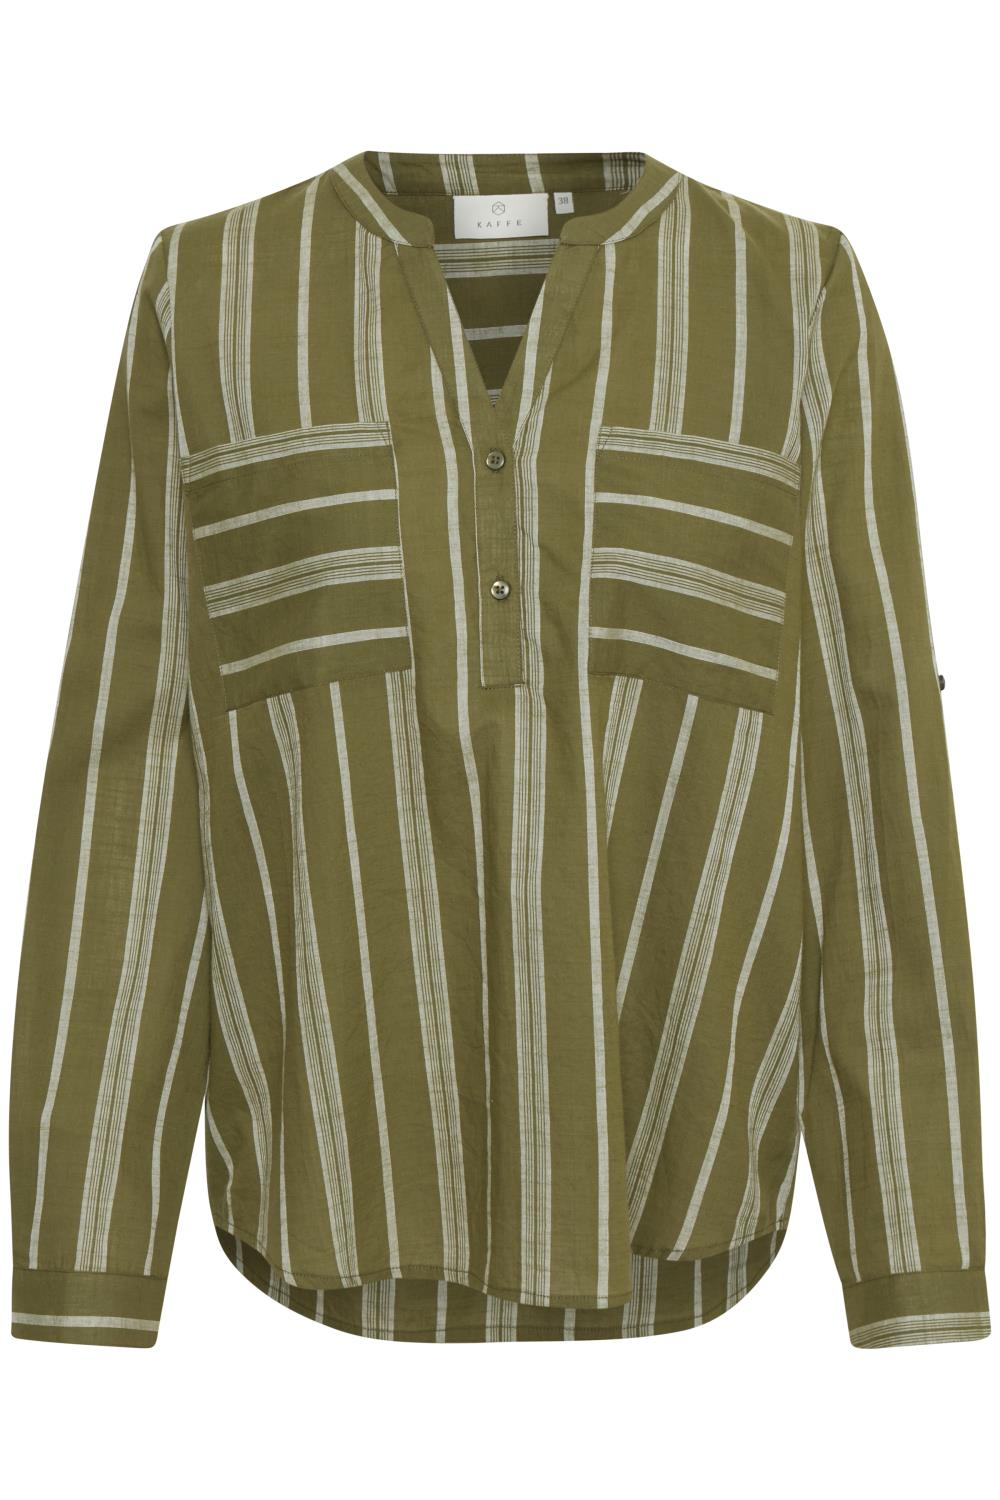 Kaffe Sandy blouse, green/gray yarn dyed stripe